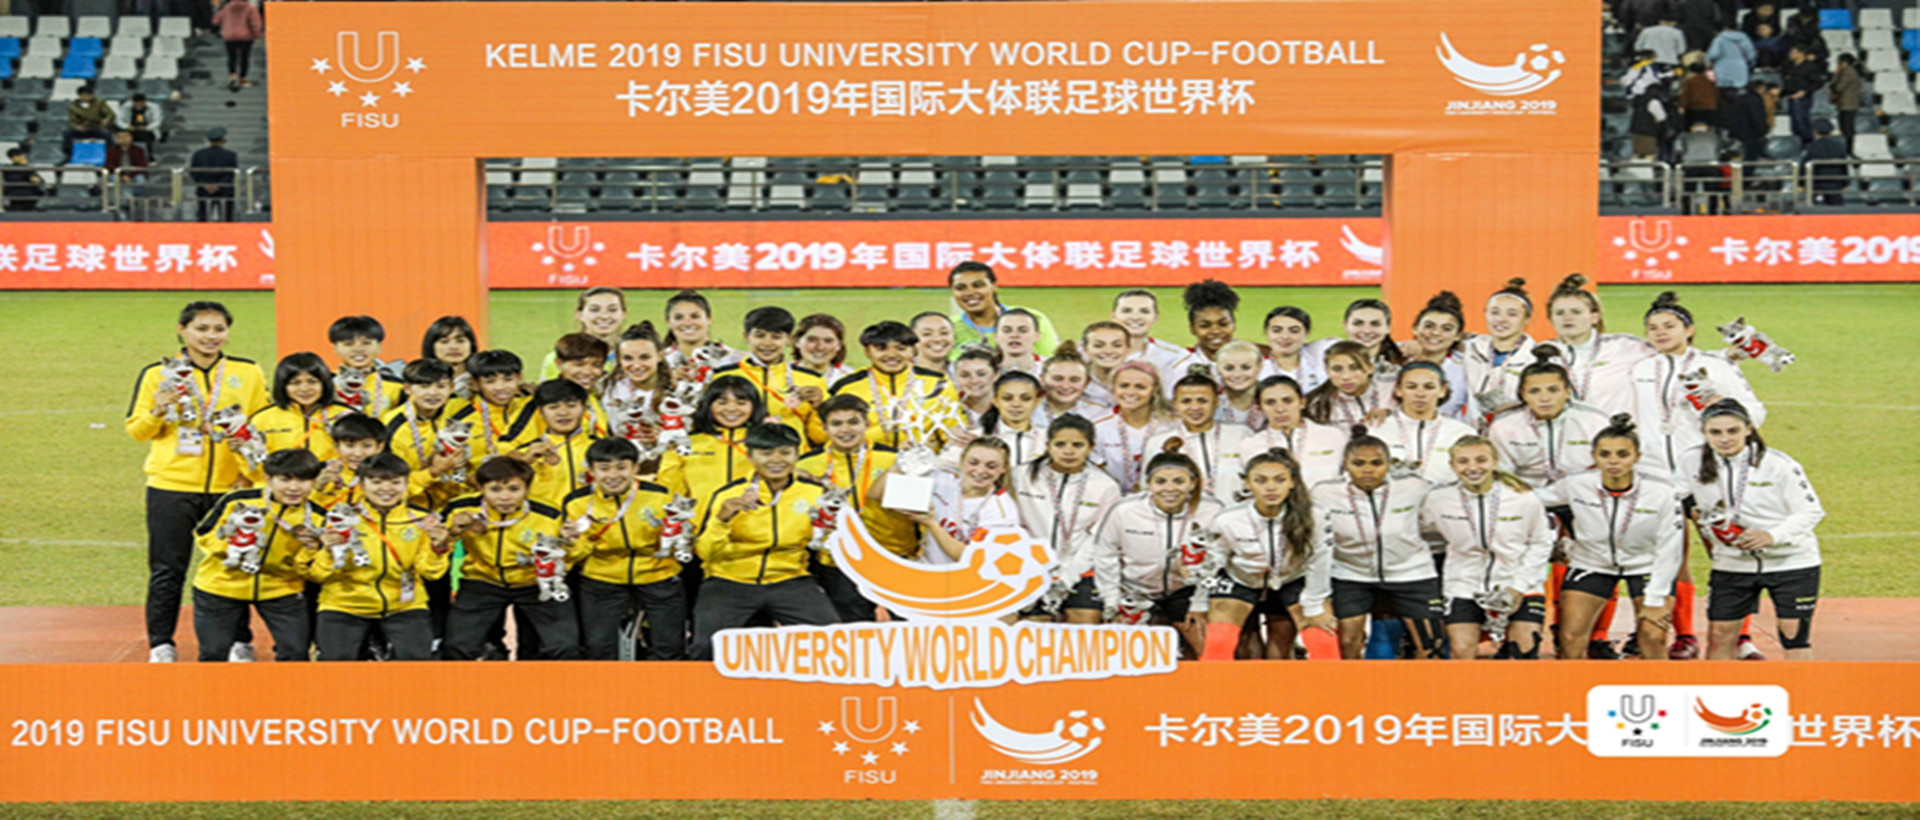 Women's final of KELME 2019 FISU University World Cup-Football: University of Ottawa won with 1-0